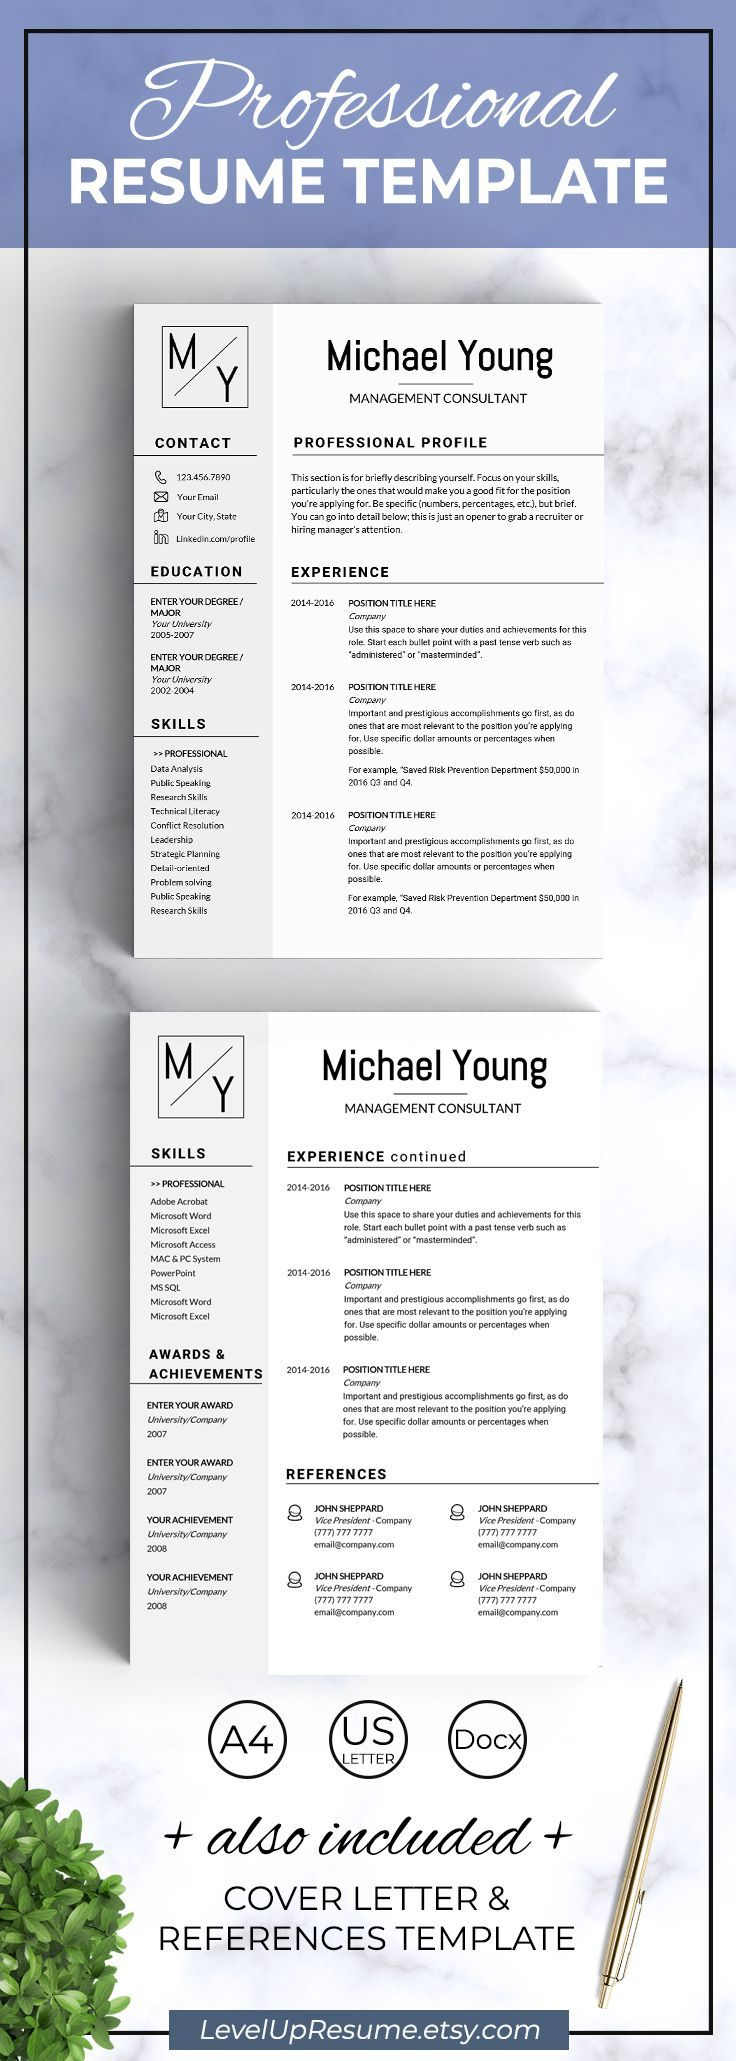 Modern Resume Template For Ms Word Professional Resume Design